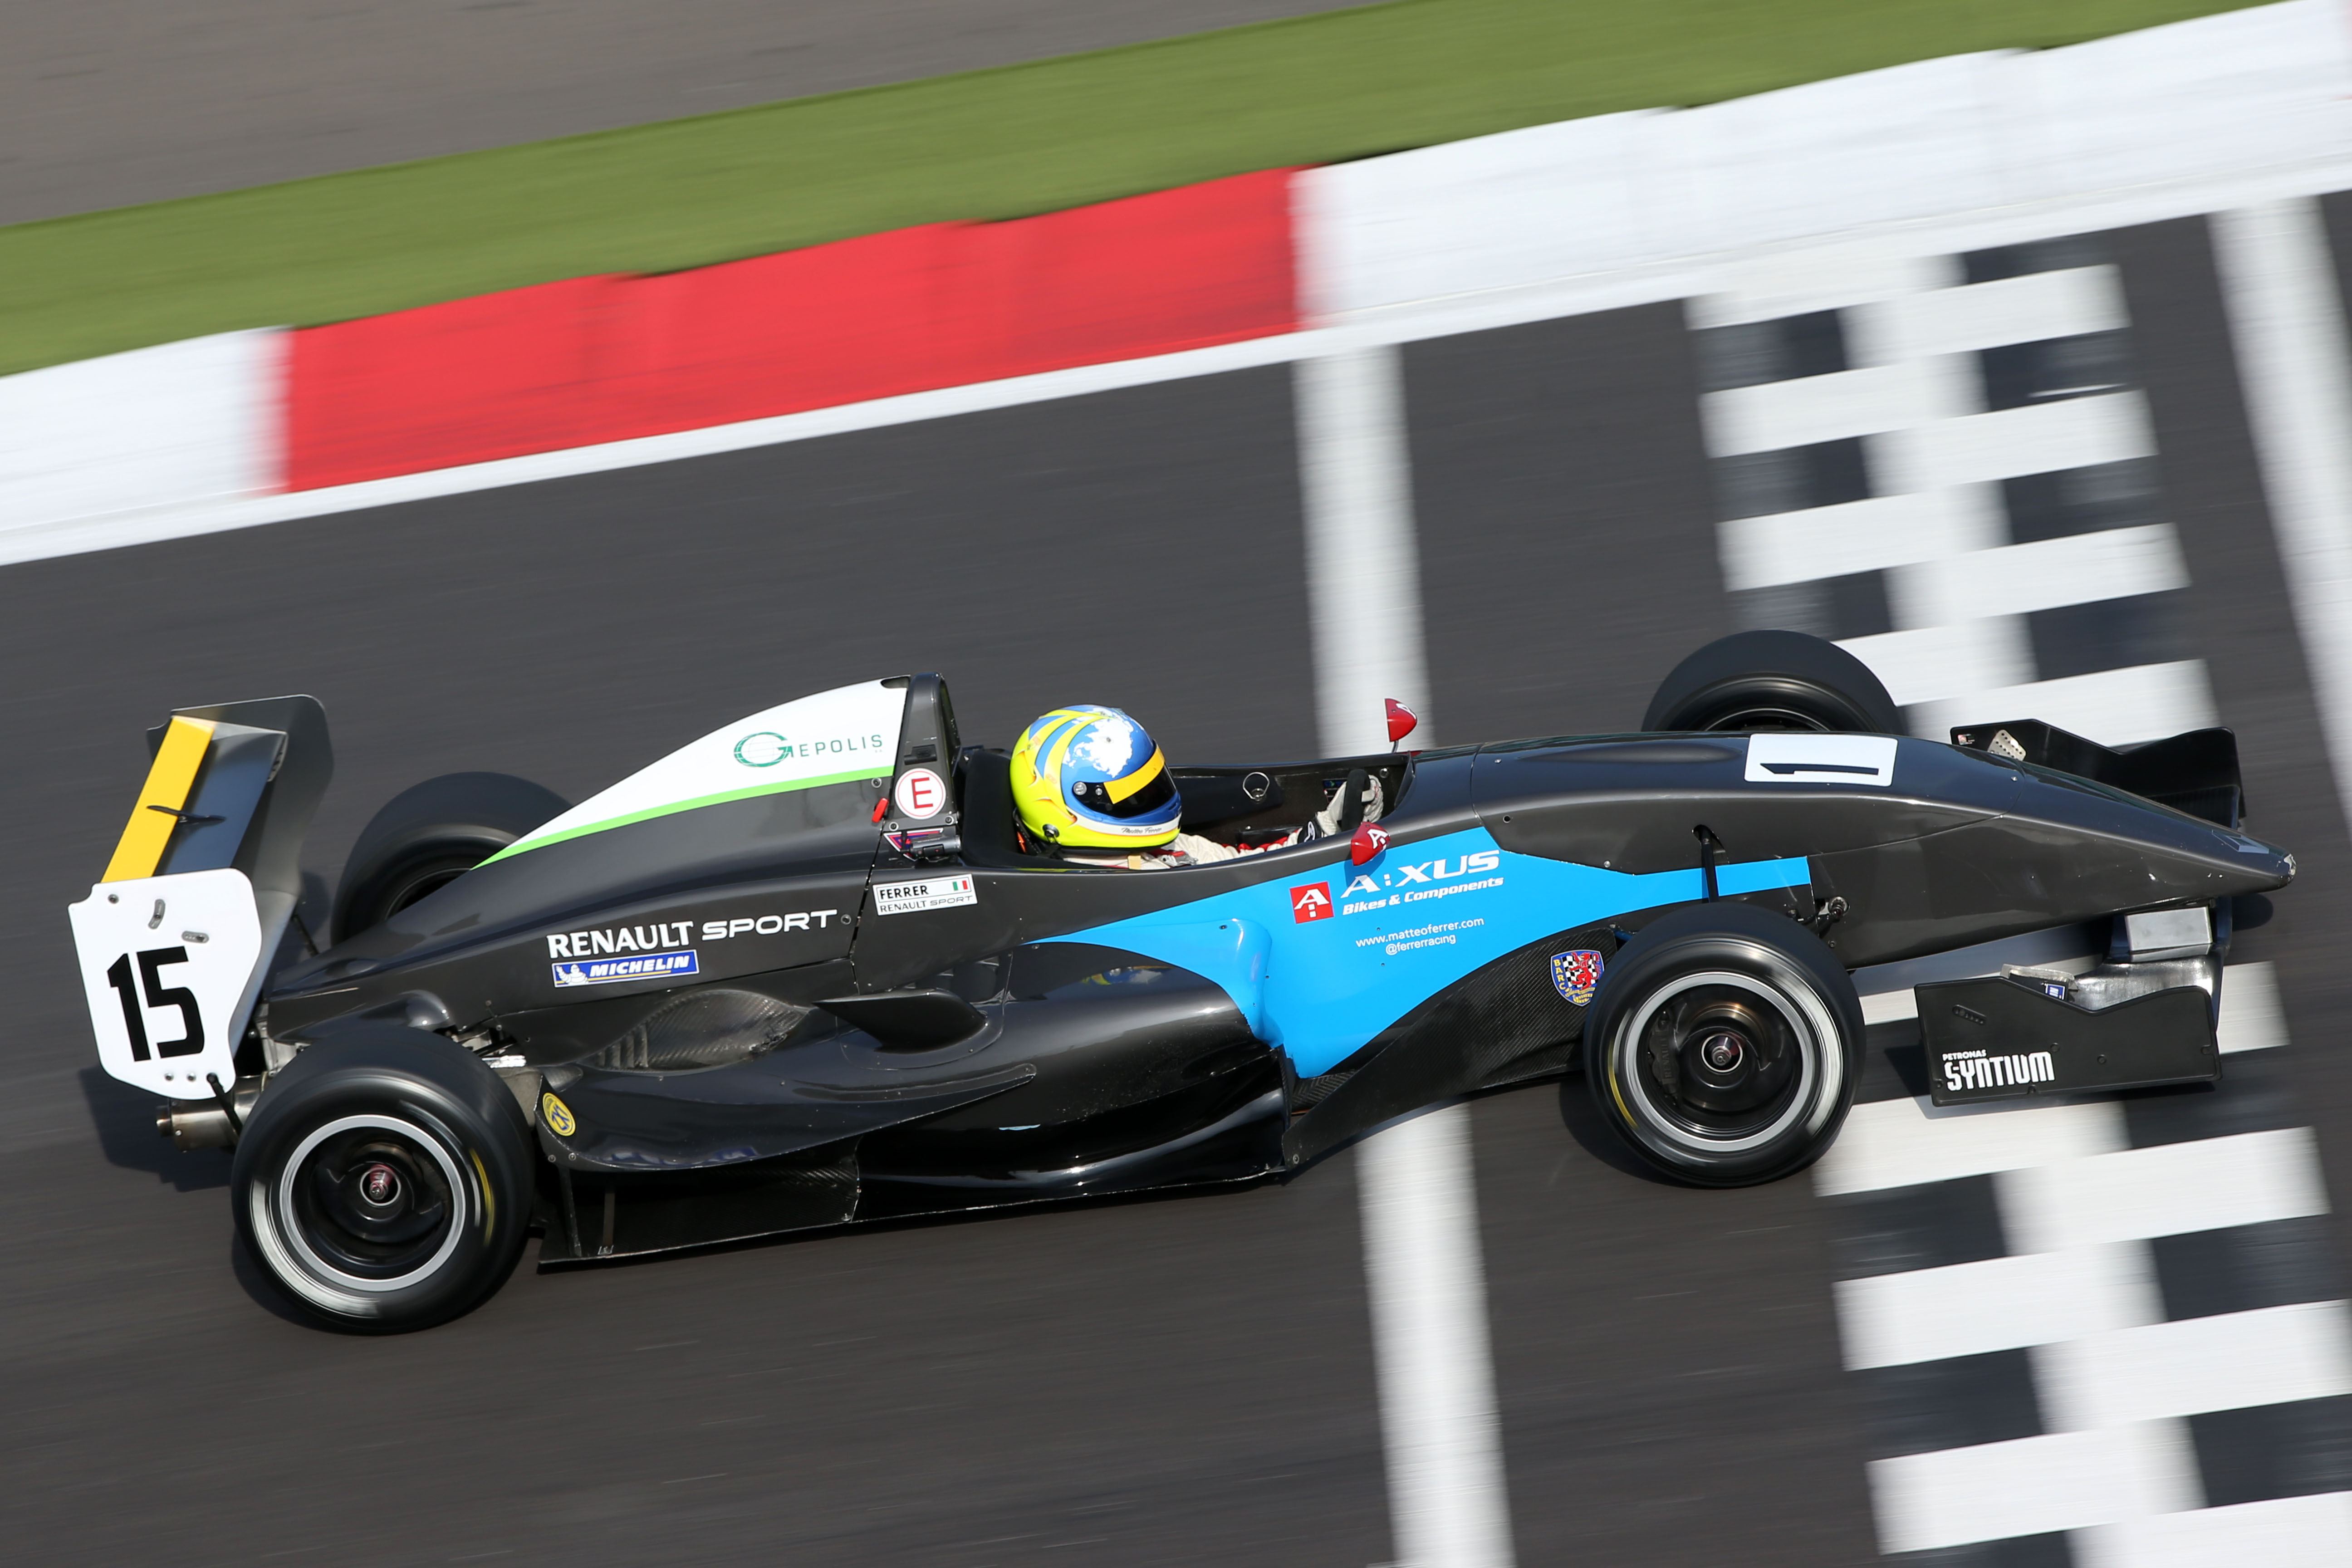 Matteo Ferrer crosses the line at the Northamptonshire track of Silverstone in his MGR Protyre Formula Renault at the last round in September 2013